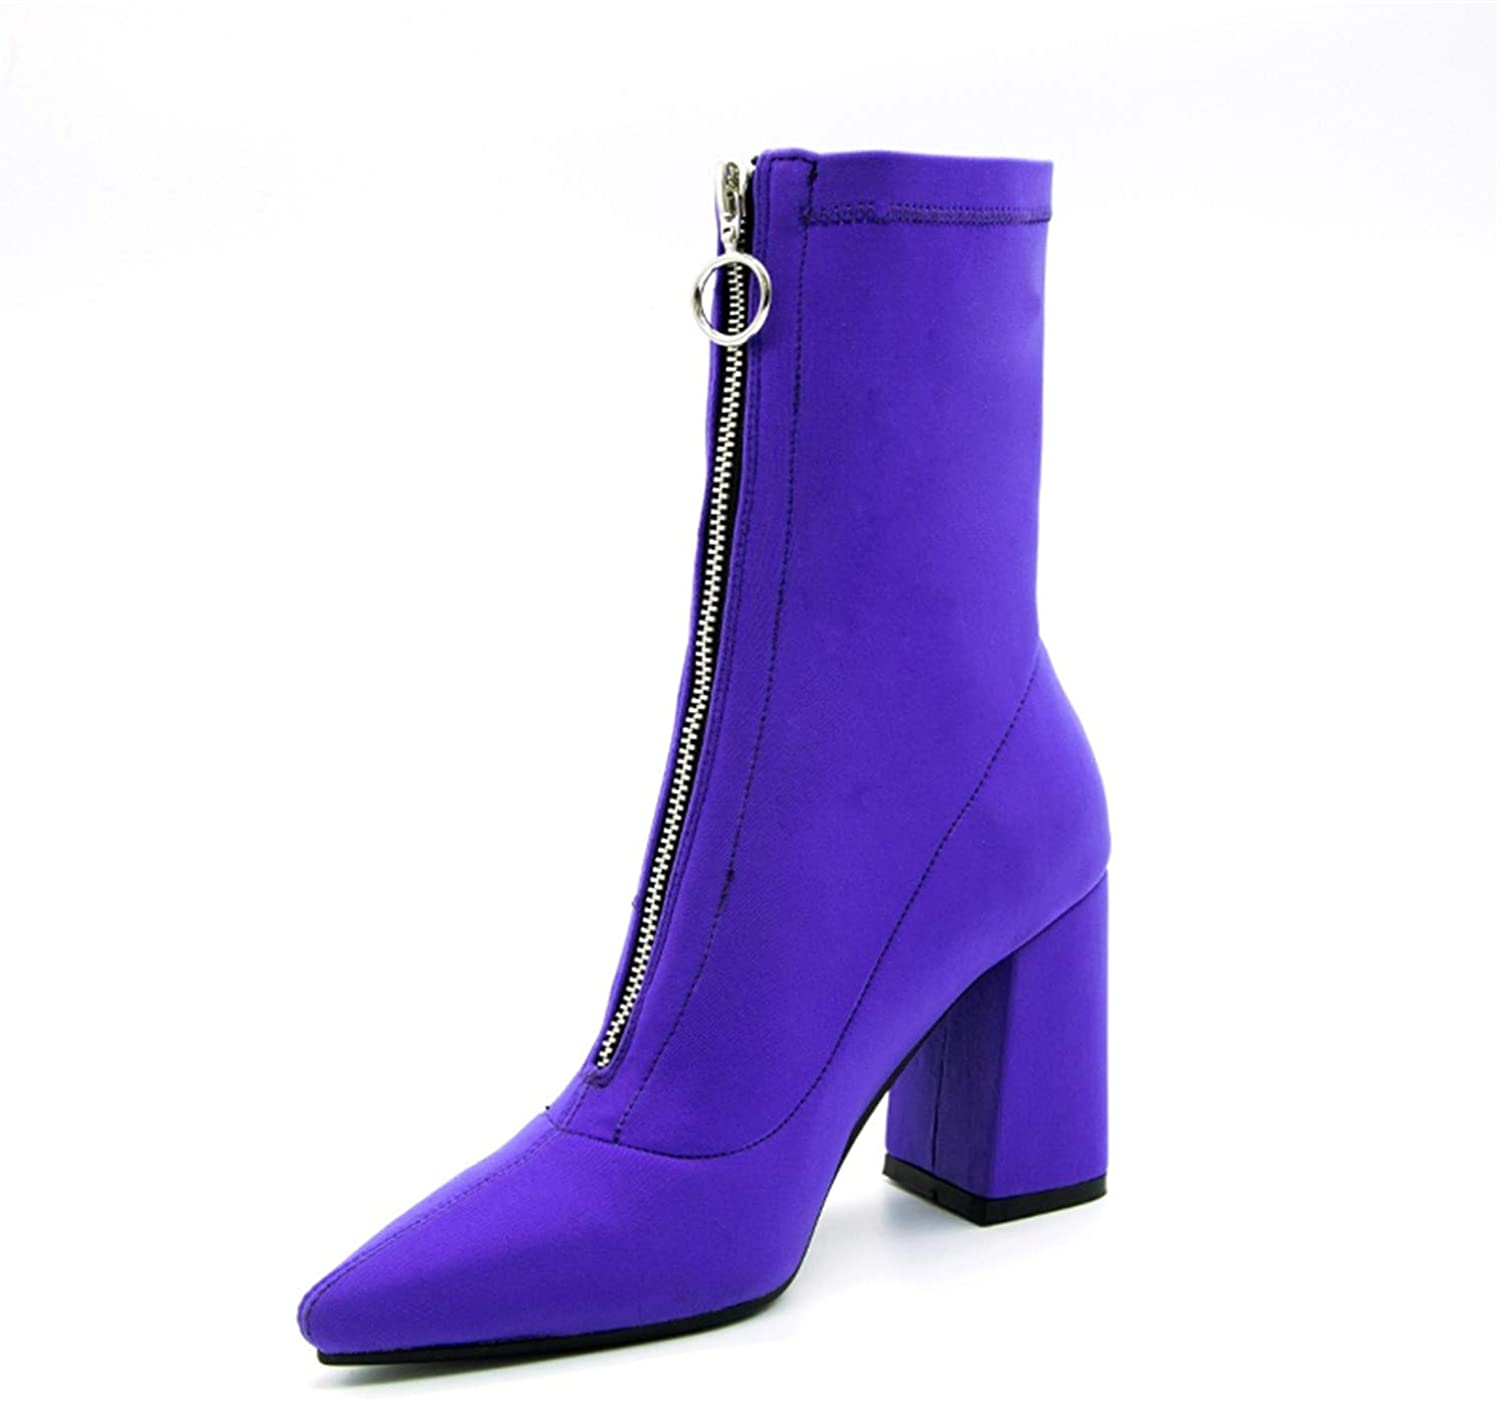 Susan1999 Lycra Women Boots Pointed Toe Square Heel shoes Woman Fashion Bota Feminina Ankle Boots